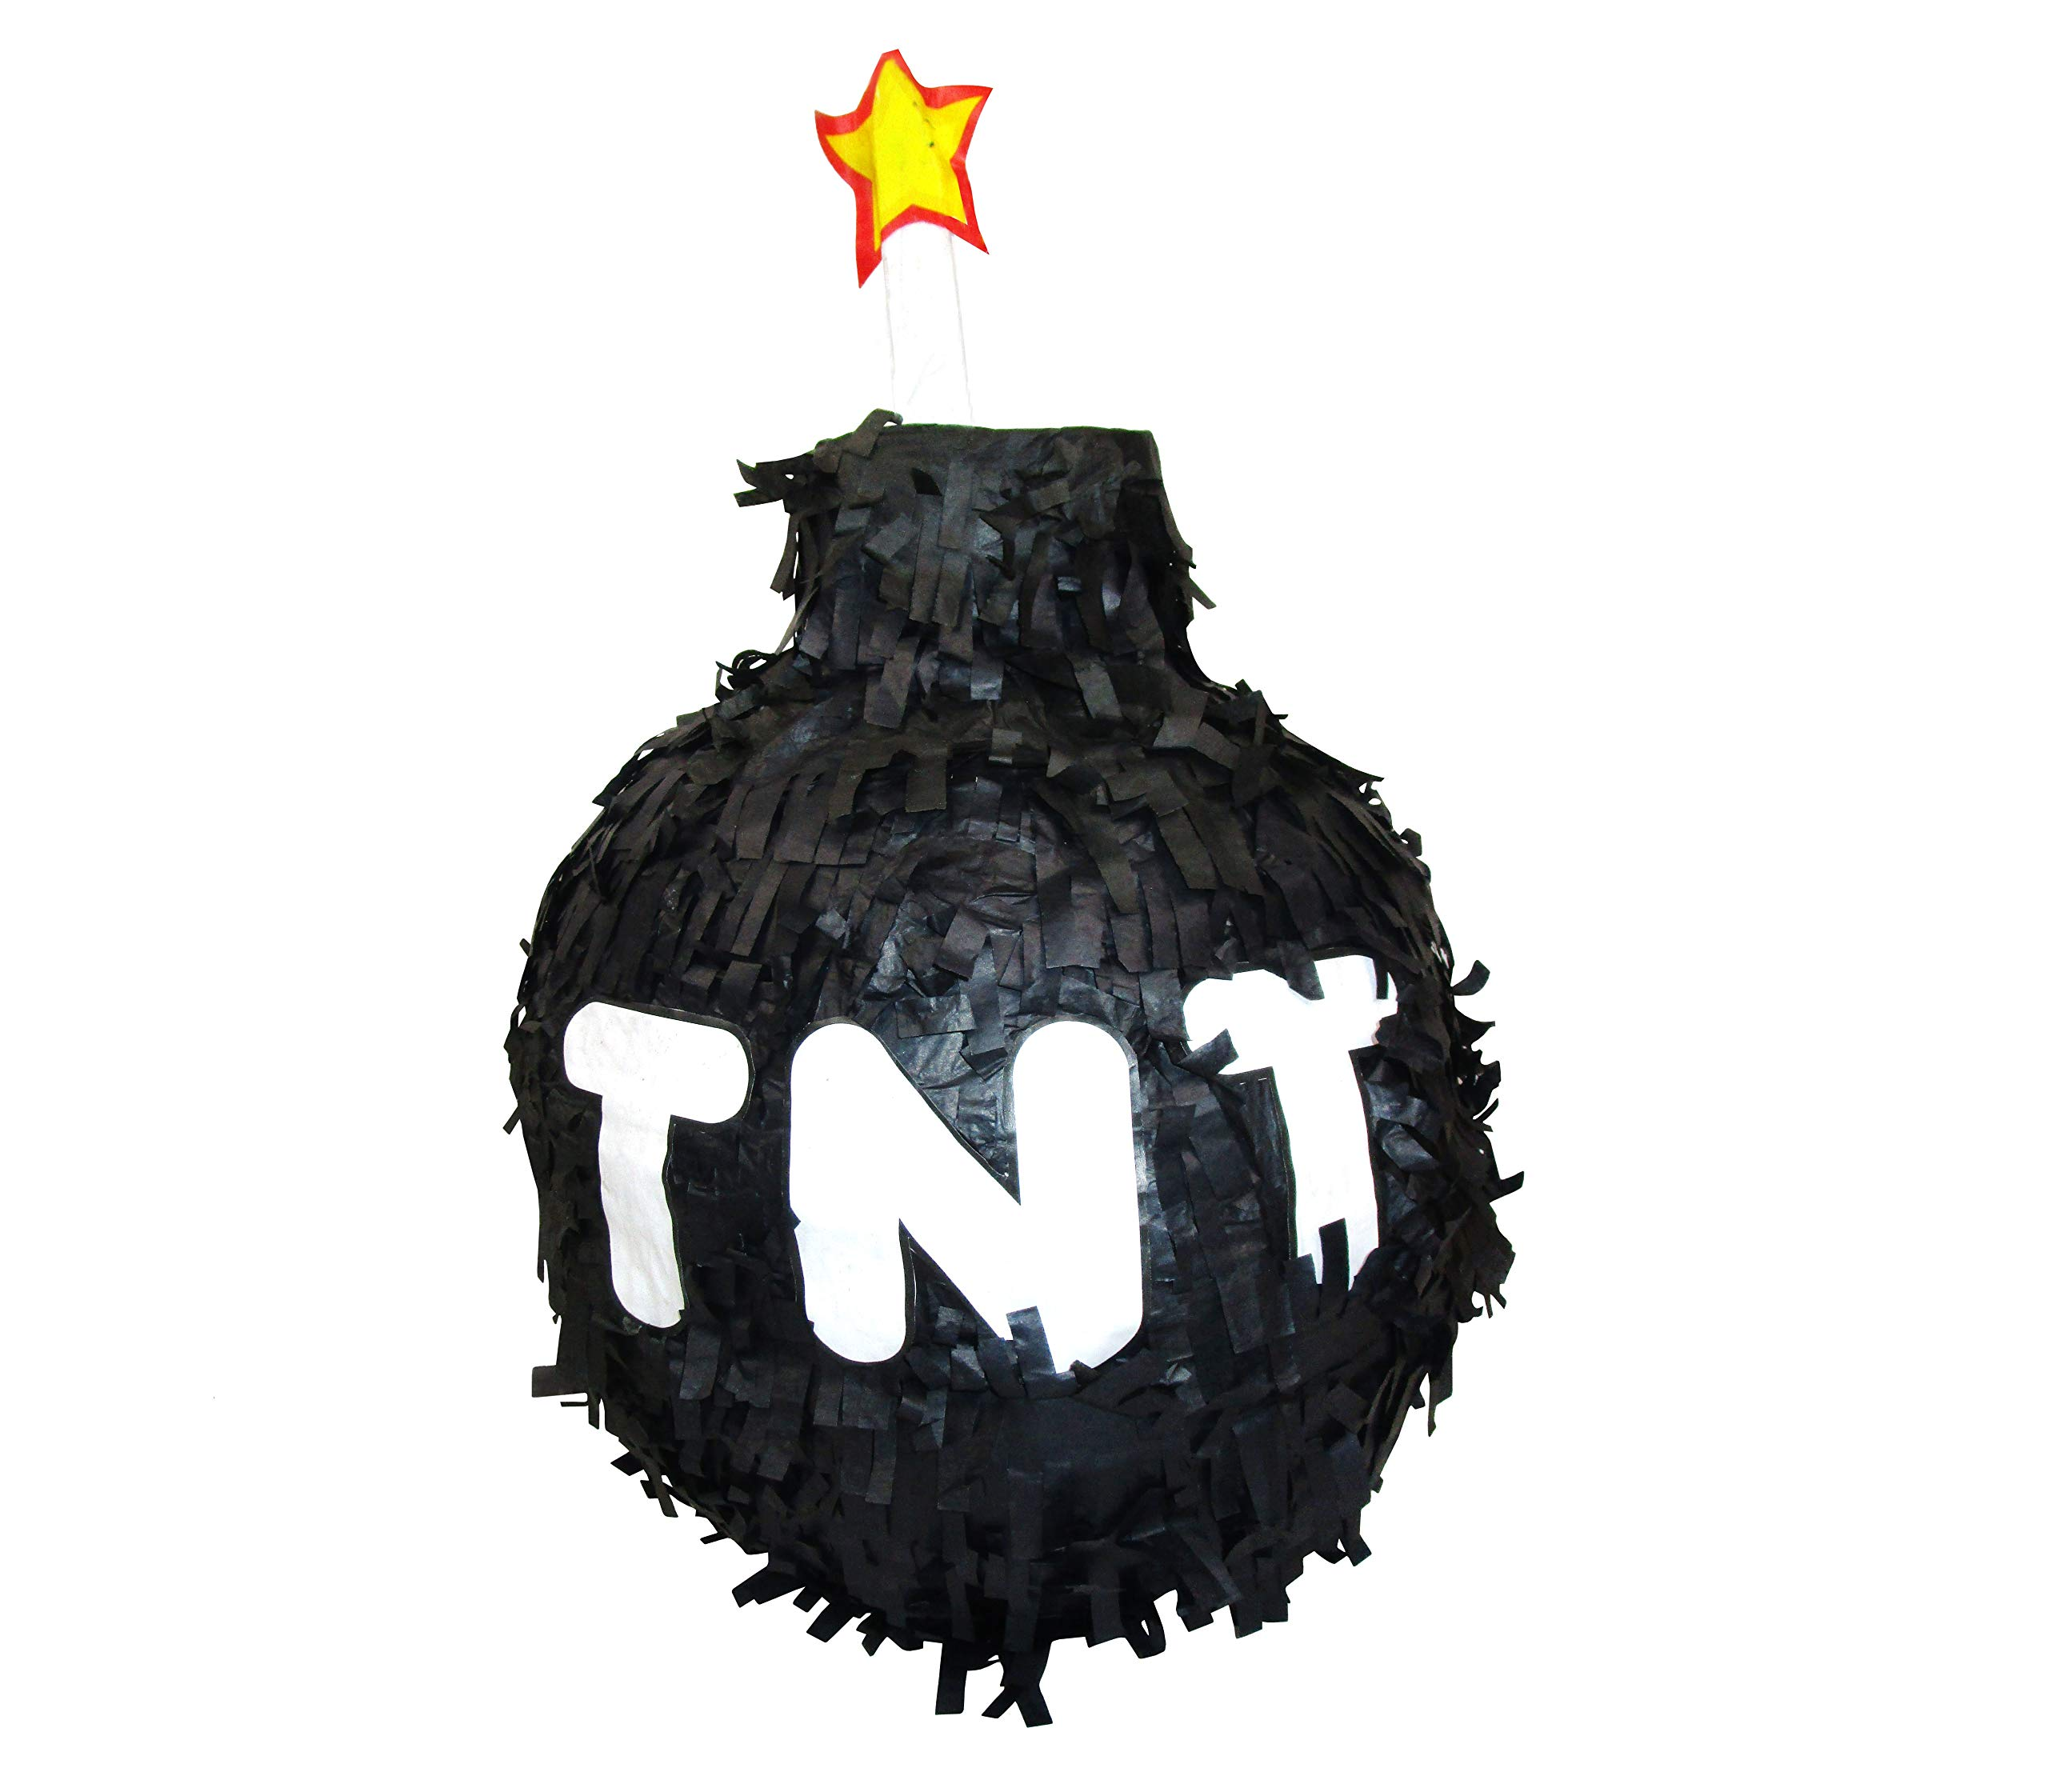 Large TNT Bomb Pinata, Party Game, Birthday Decoration, Photo Prop and Gamers Collectible